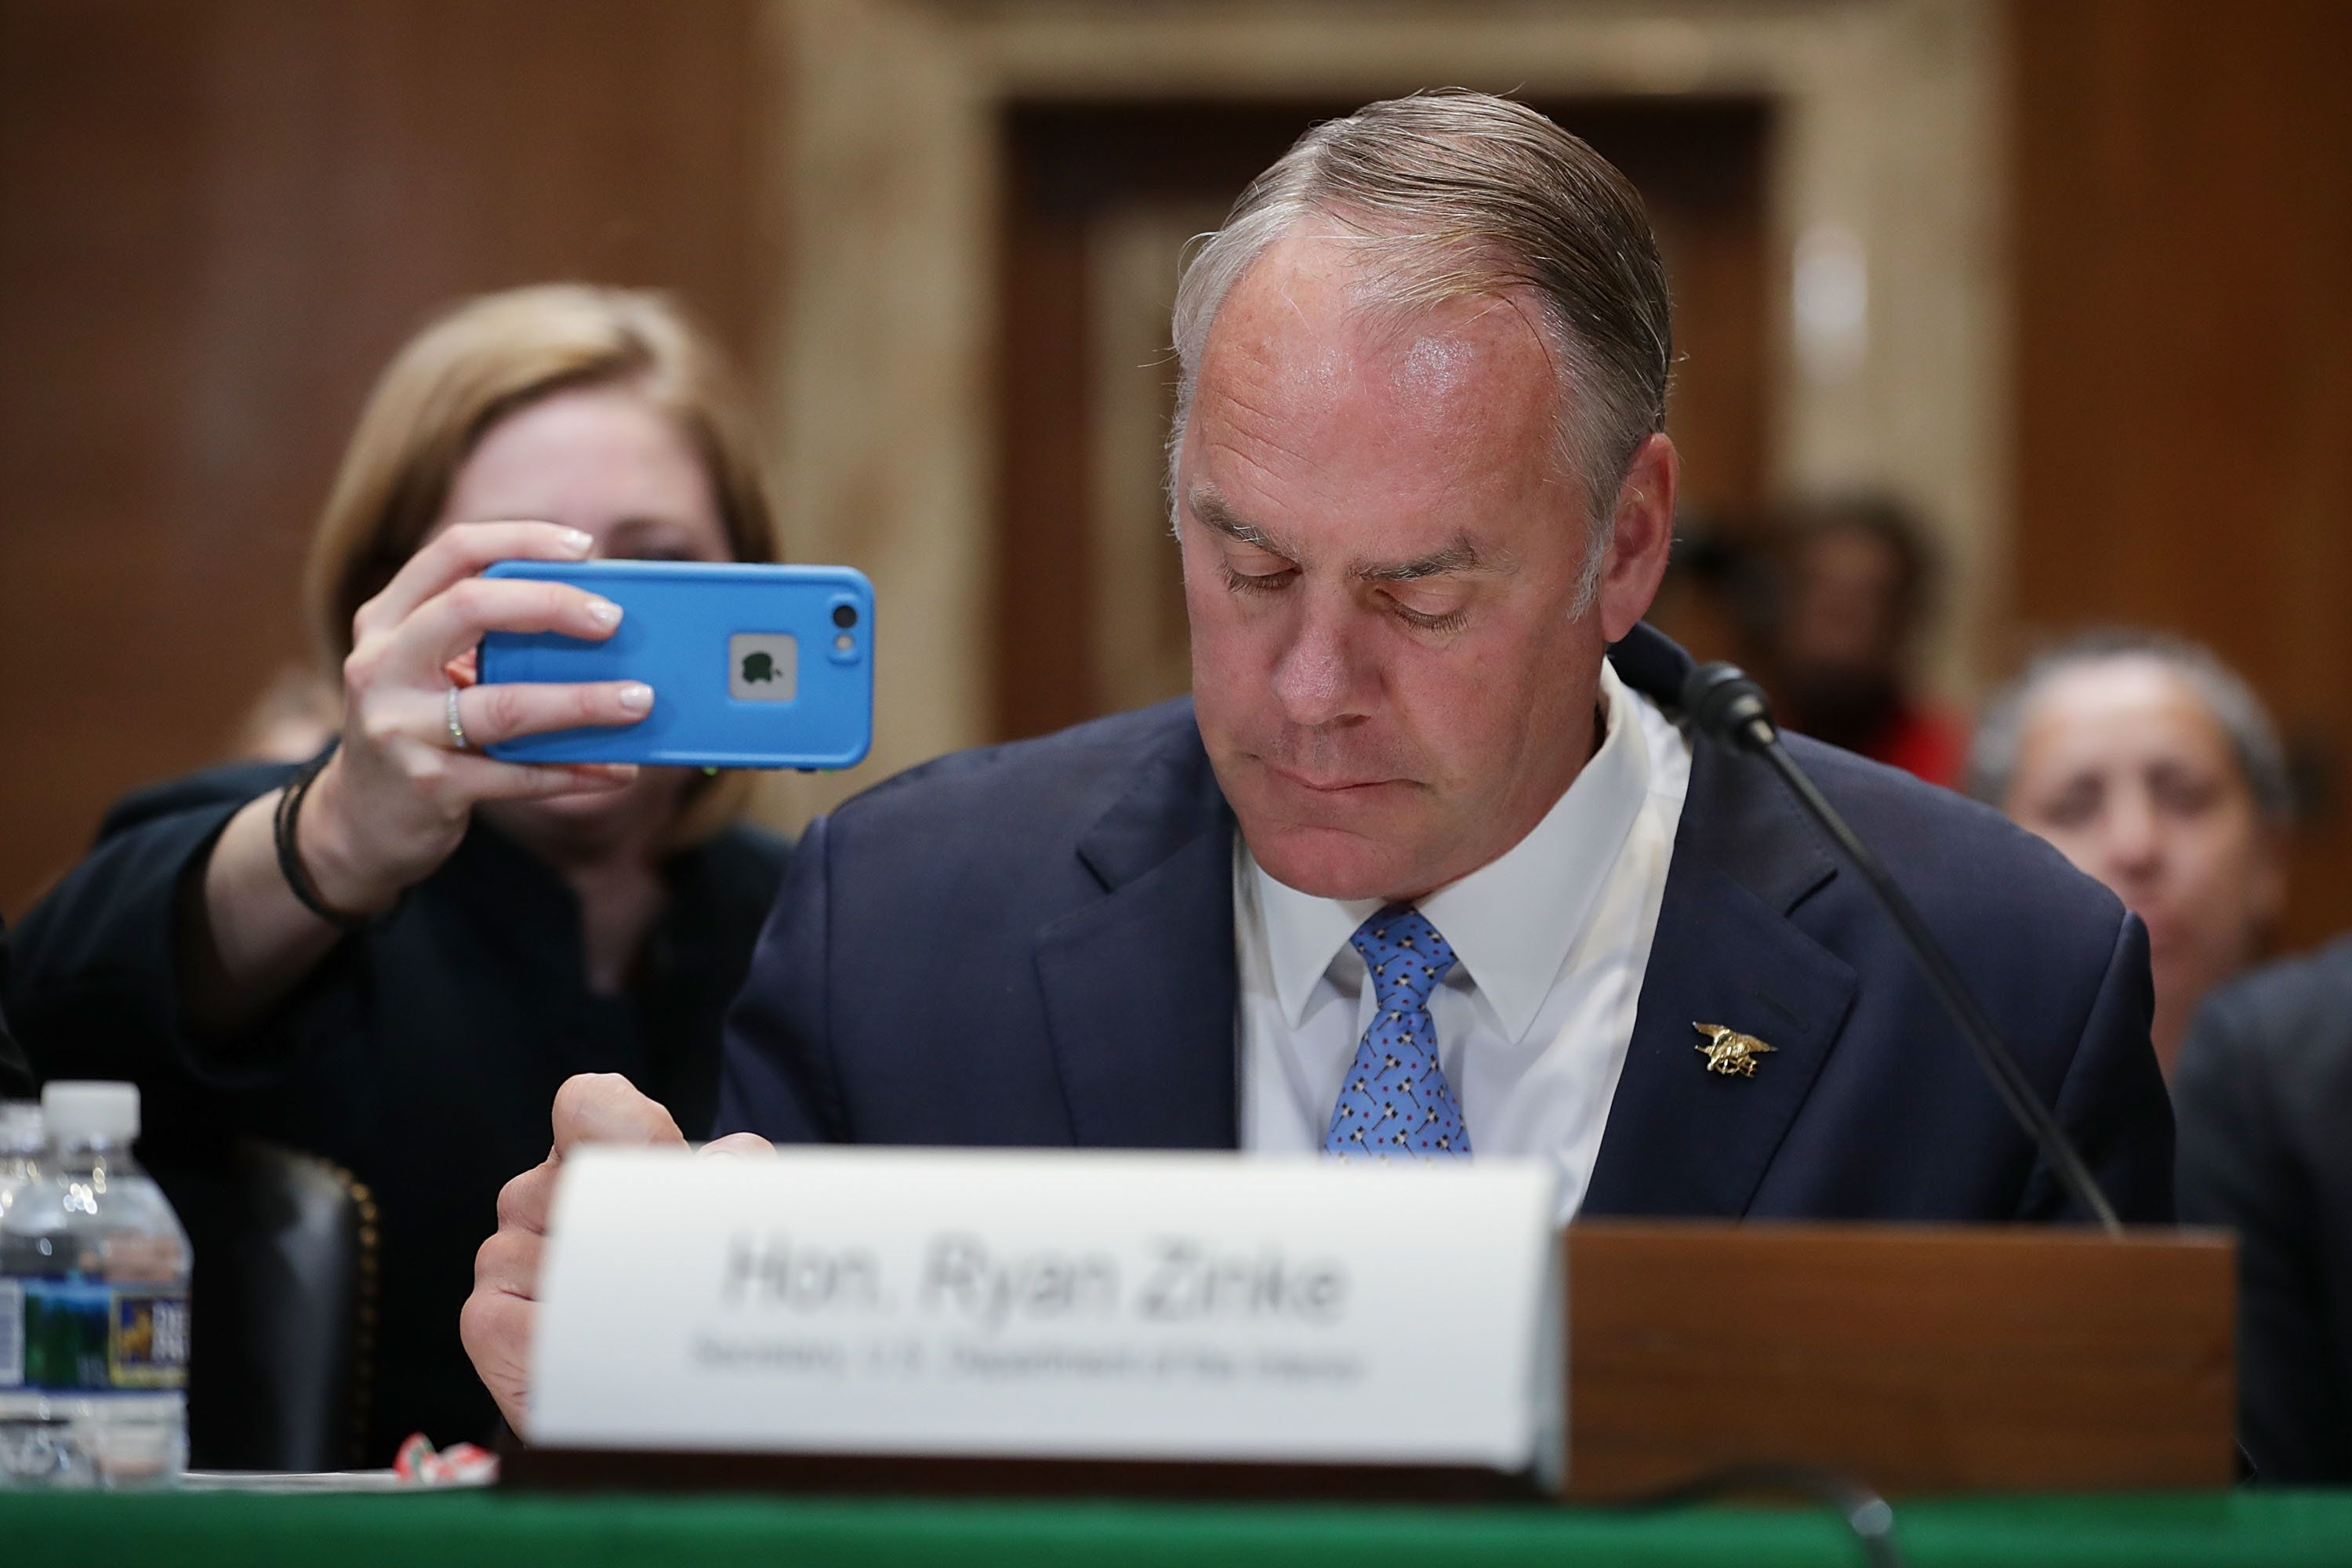 WASHINGTON, DC - MAY 10:  An aide to U.S. Interior Secretary Ryan Zinke makes a photograph for his Twitter account as he testifies before the Senate Appropriations Committee's Interior, Environment, and Related Agencies Subcommittee in the Dirksen Senate Office Building on Capitol Hill May 10, 2018 in Washington, DC. Zinke testified about his department's FY2019 funding request and budget.  (Photo by Chip Somodevilla/Getty Images)